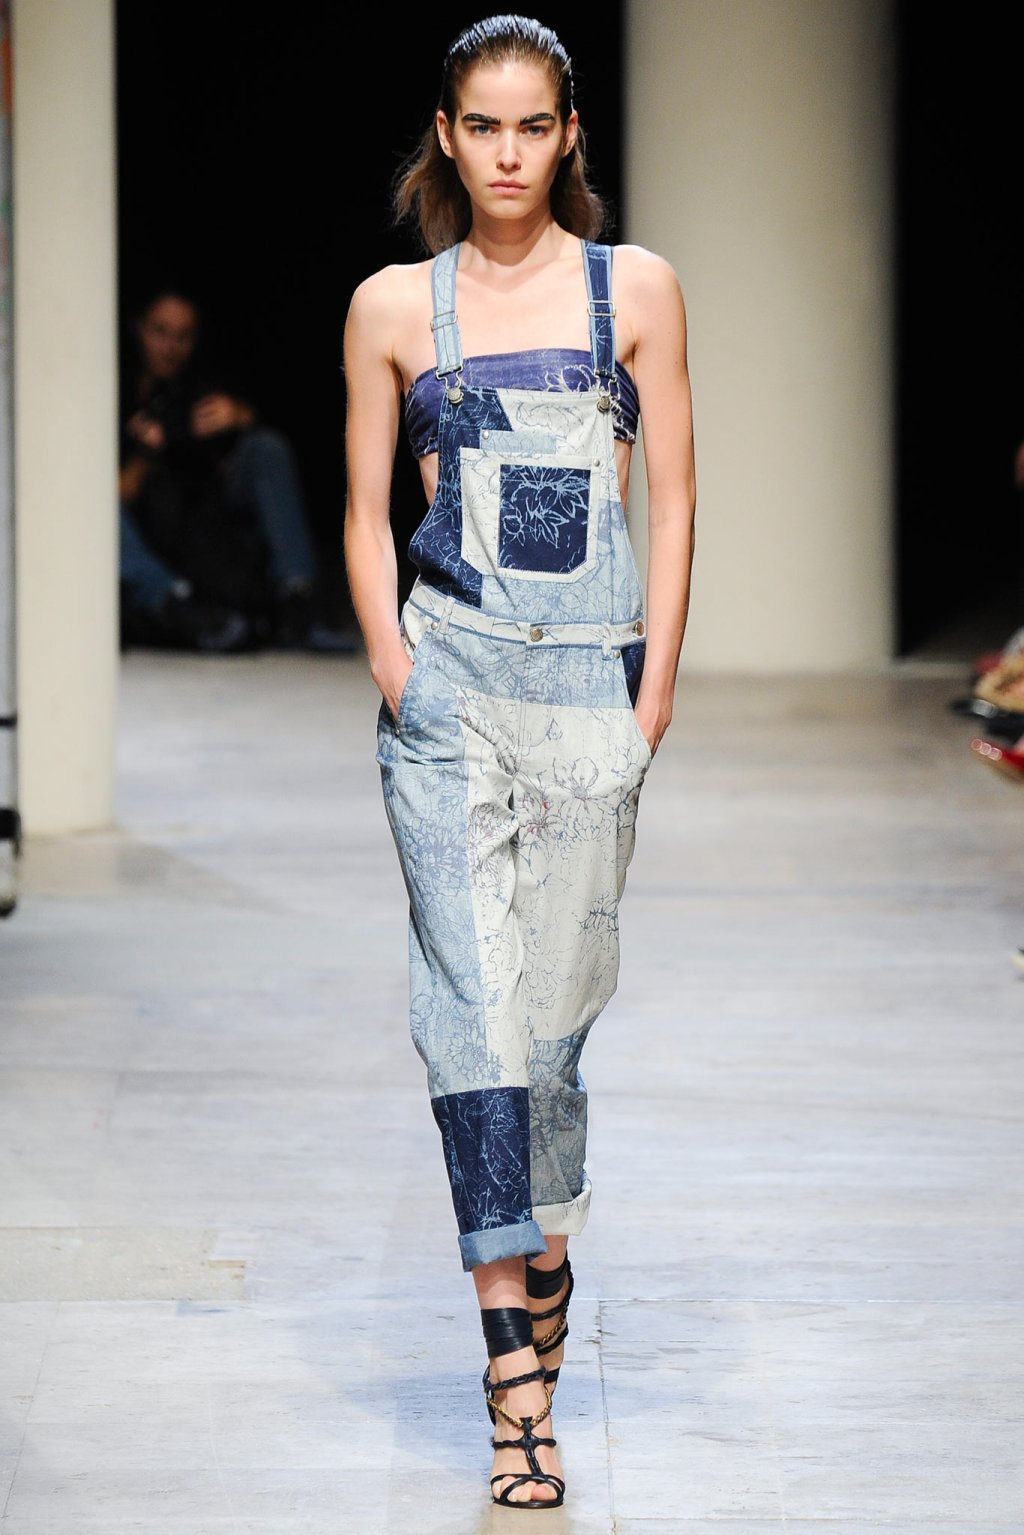 LEONARD DENIM OVERALLS DUNGAREES MODEL SPRING SUMMER 2015 FASHION WEEK